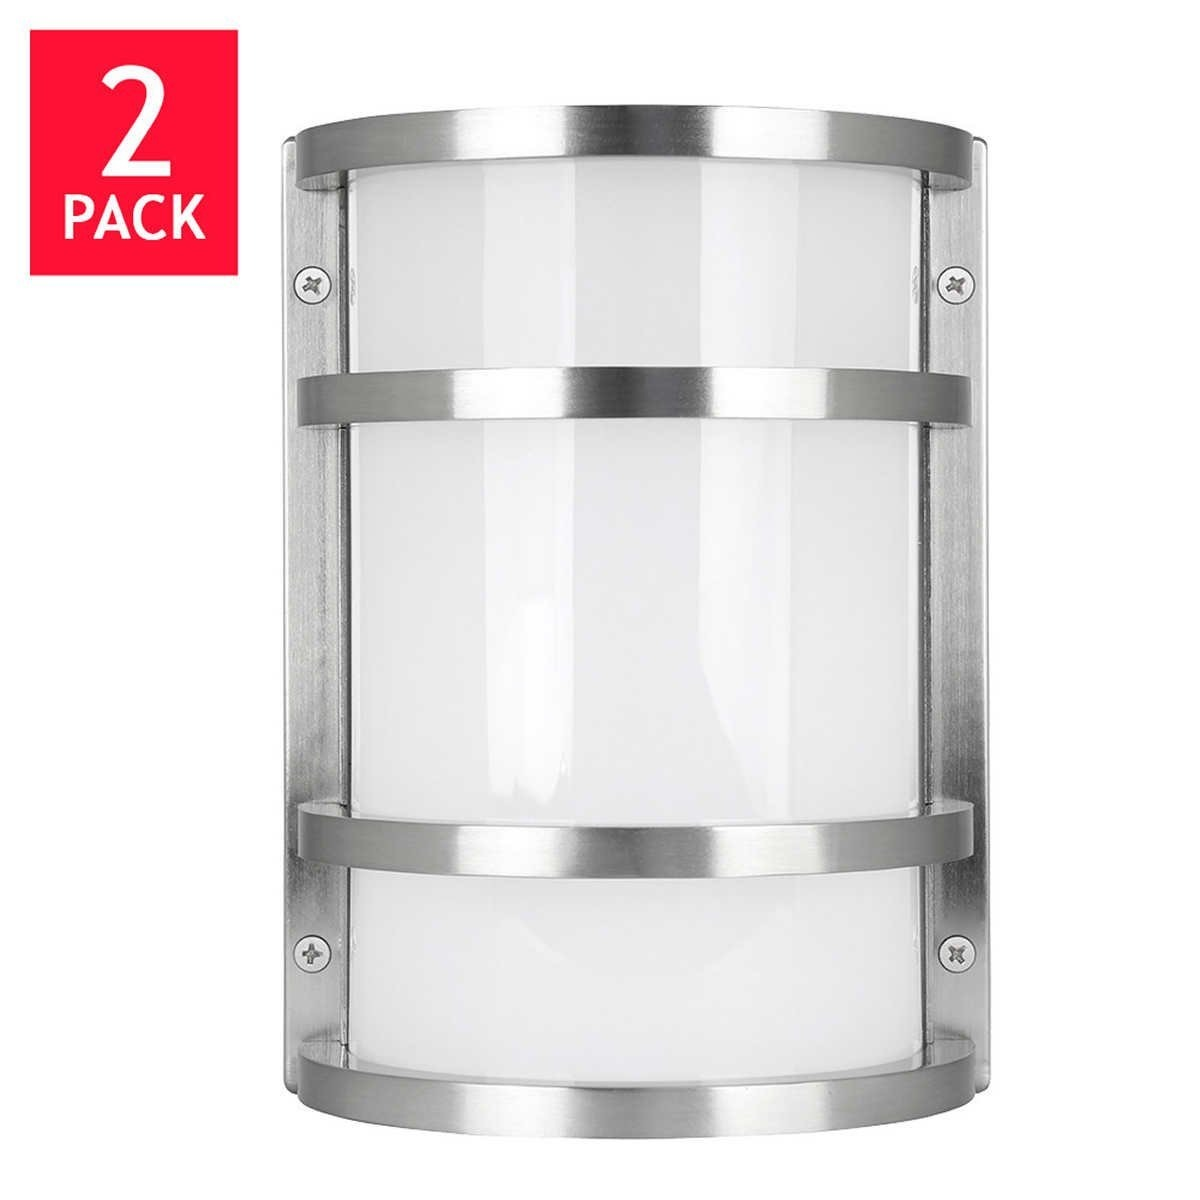 Feit electric led wall sconce indoor 279374 en mercado libre feit electric led wall sconce indoor cargando zoom aloadofball Gallery